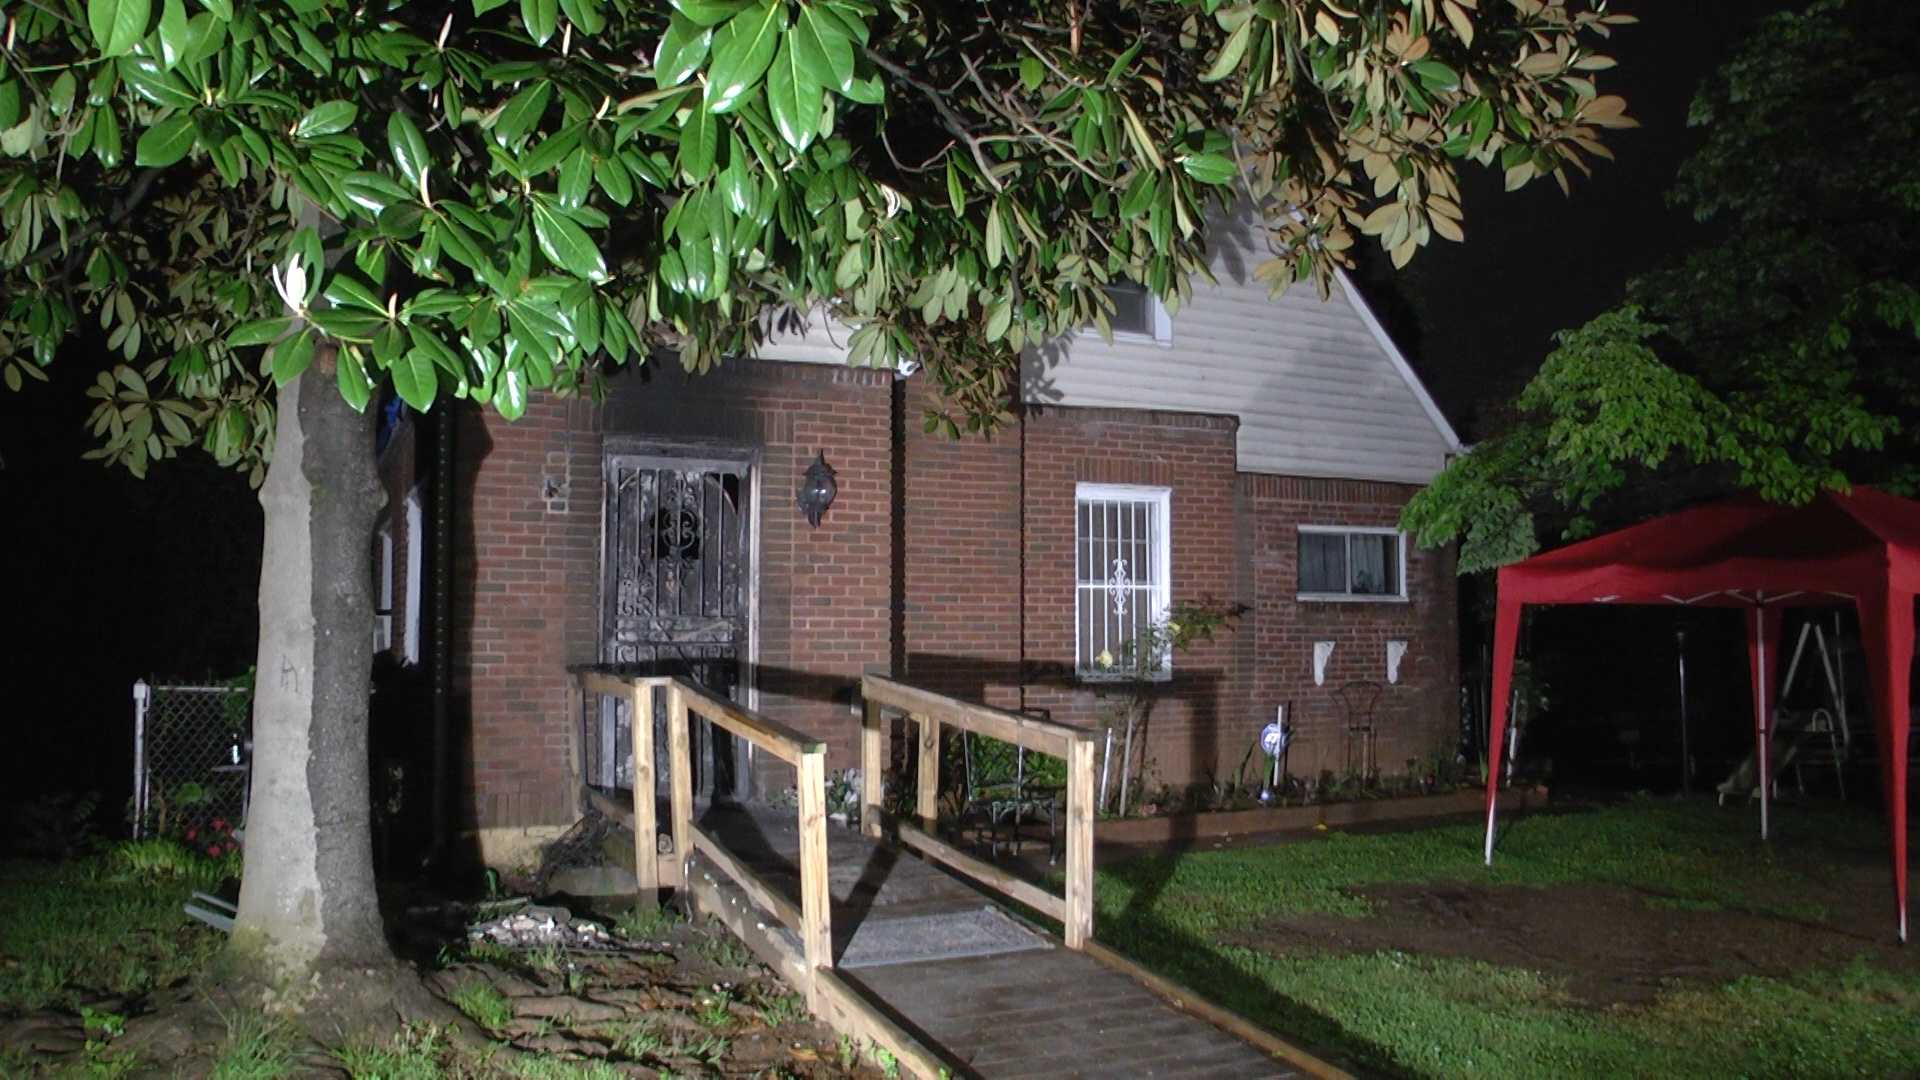 The fire started around 1:15 a.m. Wednesday in the 3300 block of Avenue Q in Ensley.